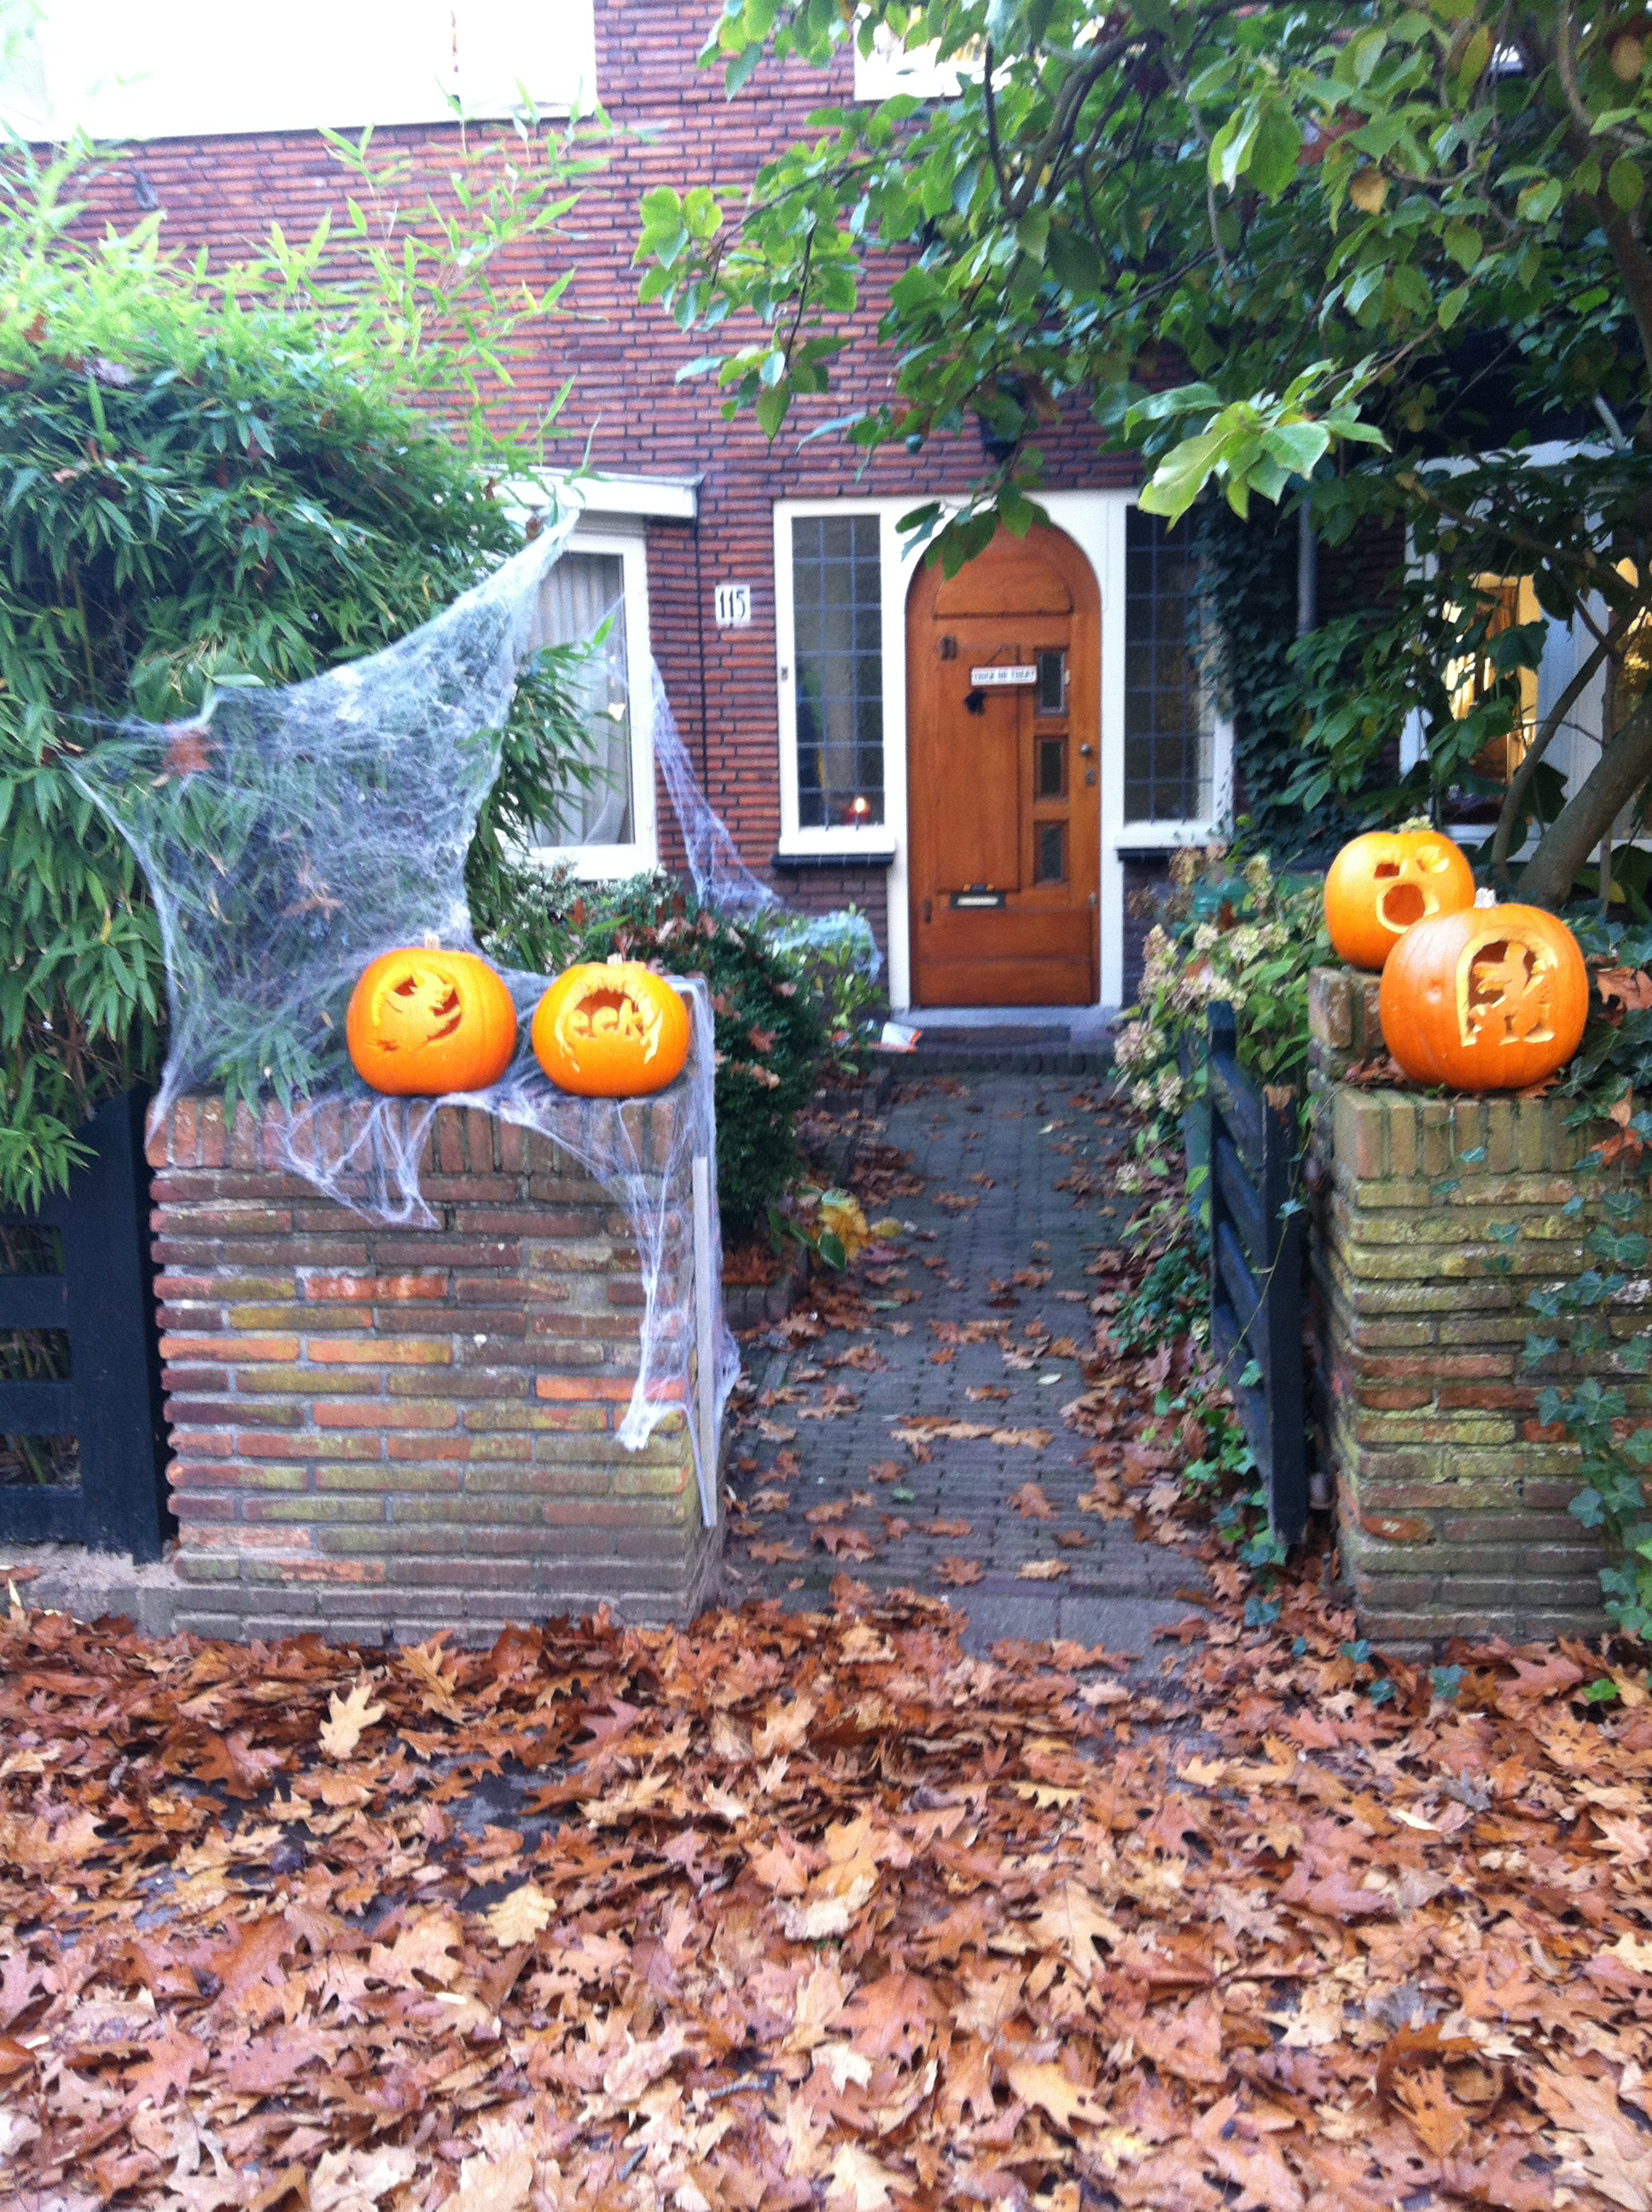 Halloween still celebrated internationally - The Daily Universe